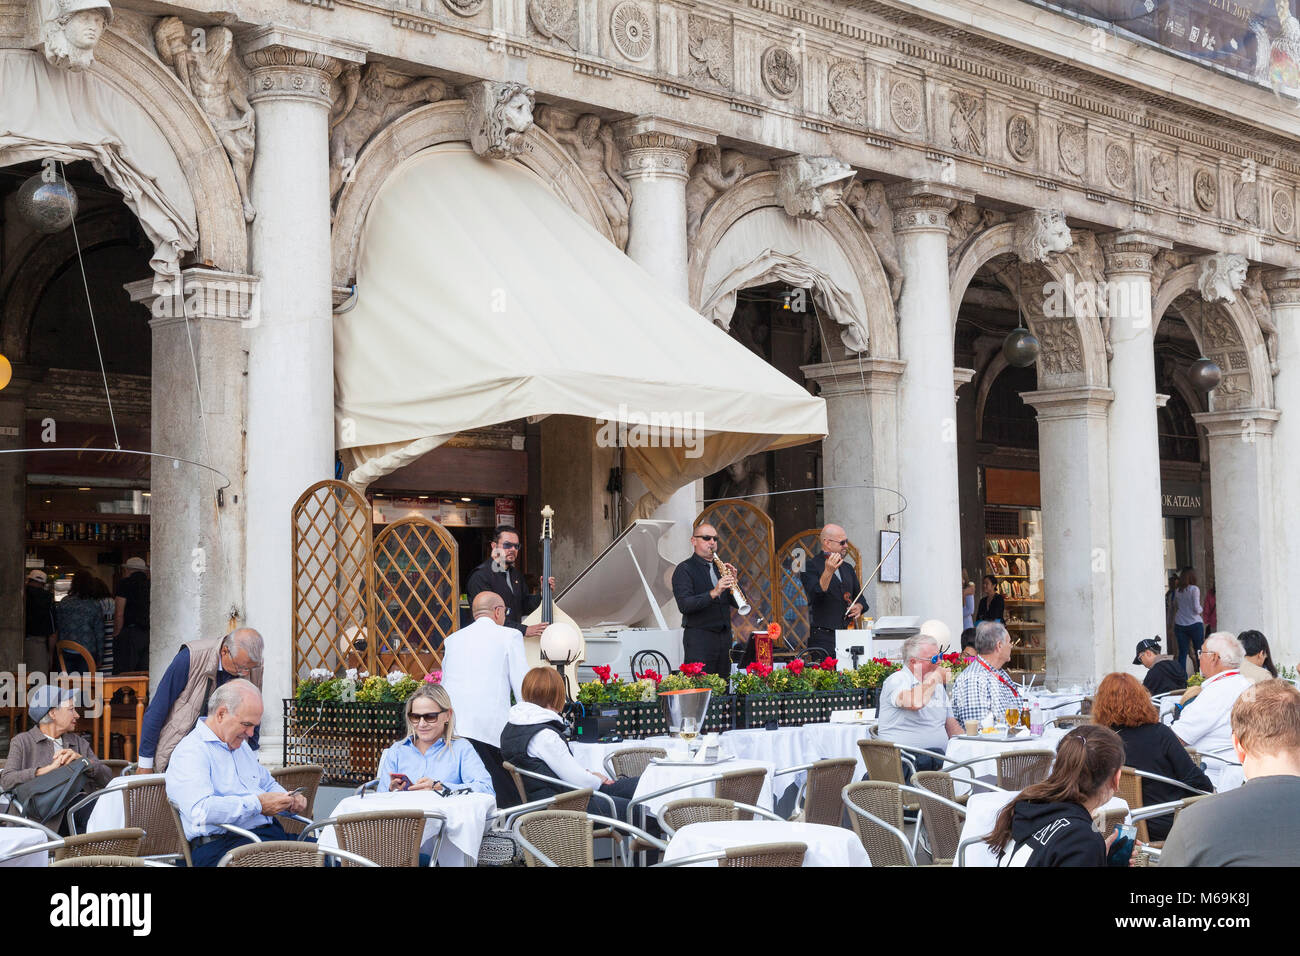 Musicians playing classical music outside the Caffe Chioggia in Piazza San Marco, Venice, Italy as tourists sit - Stock Image